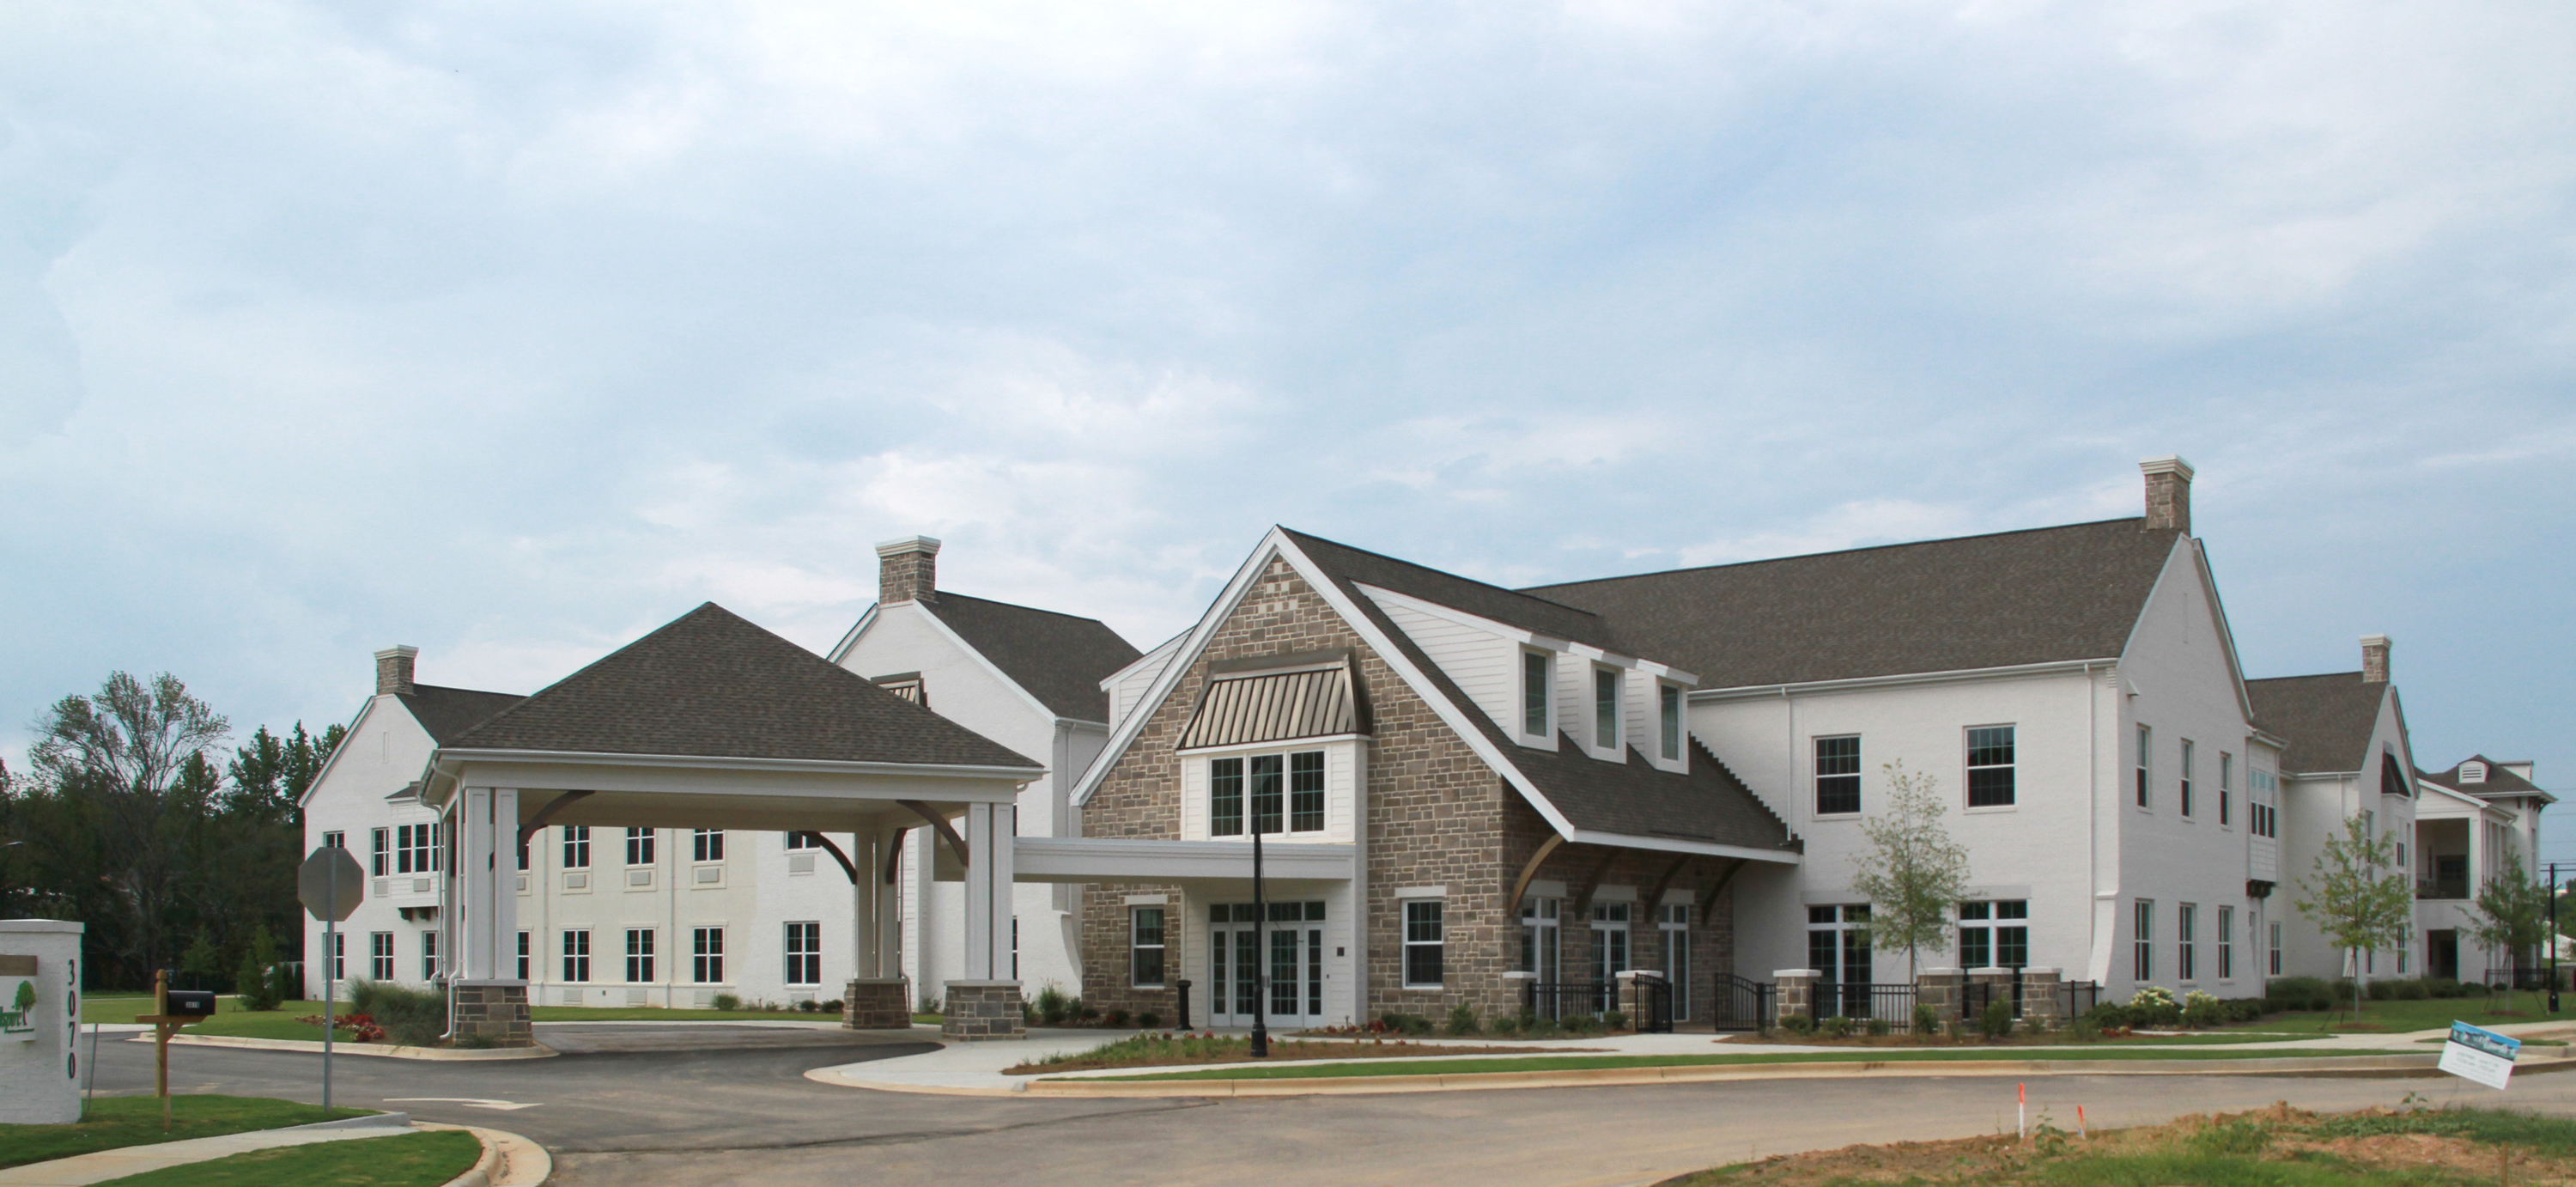 Aspire At Cahaba River Birmingham, Alabama Electrical Contractor Assisted Living Healthcare